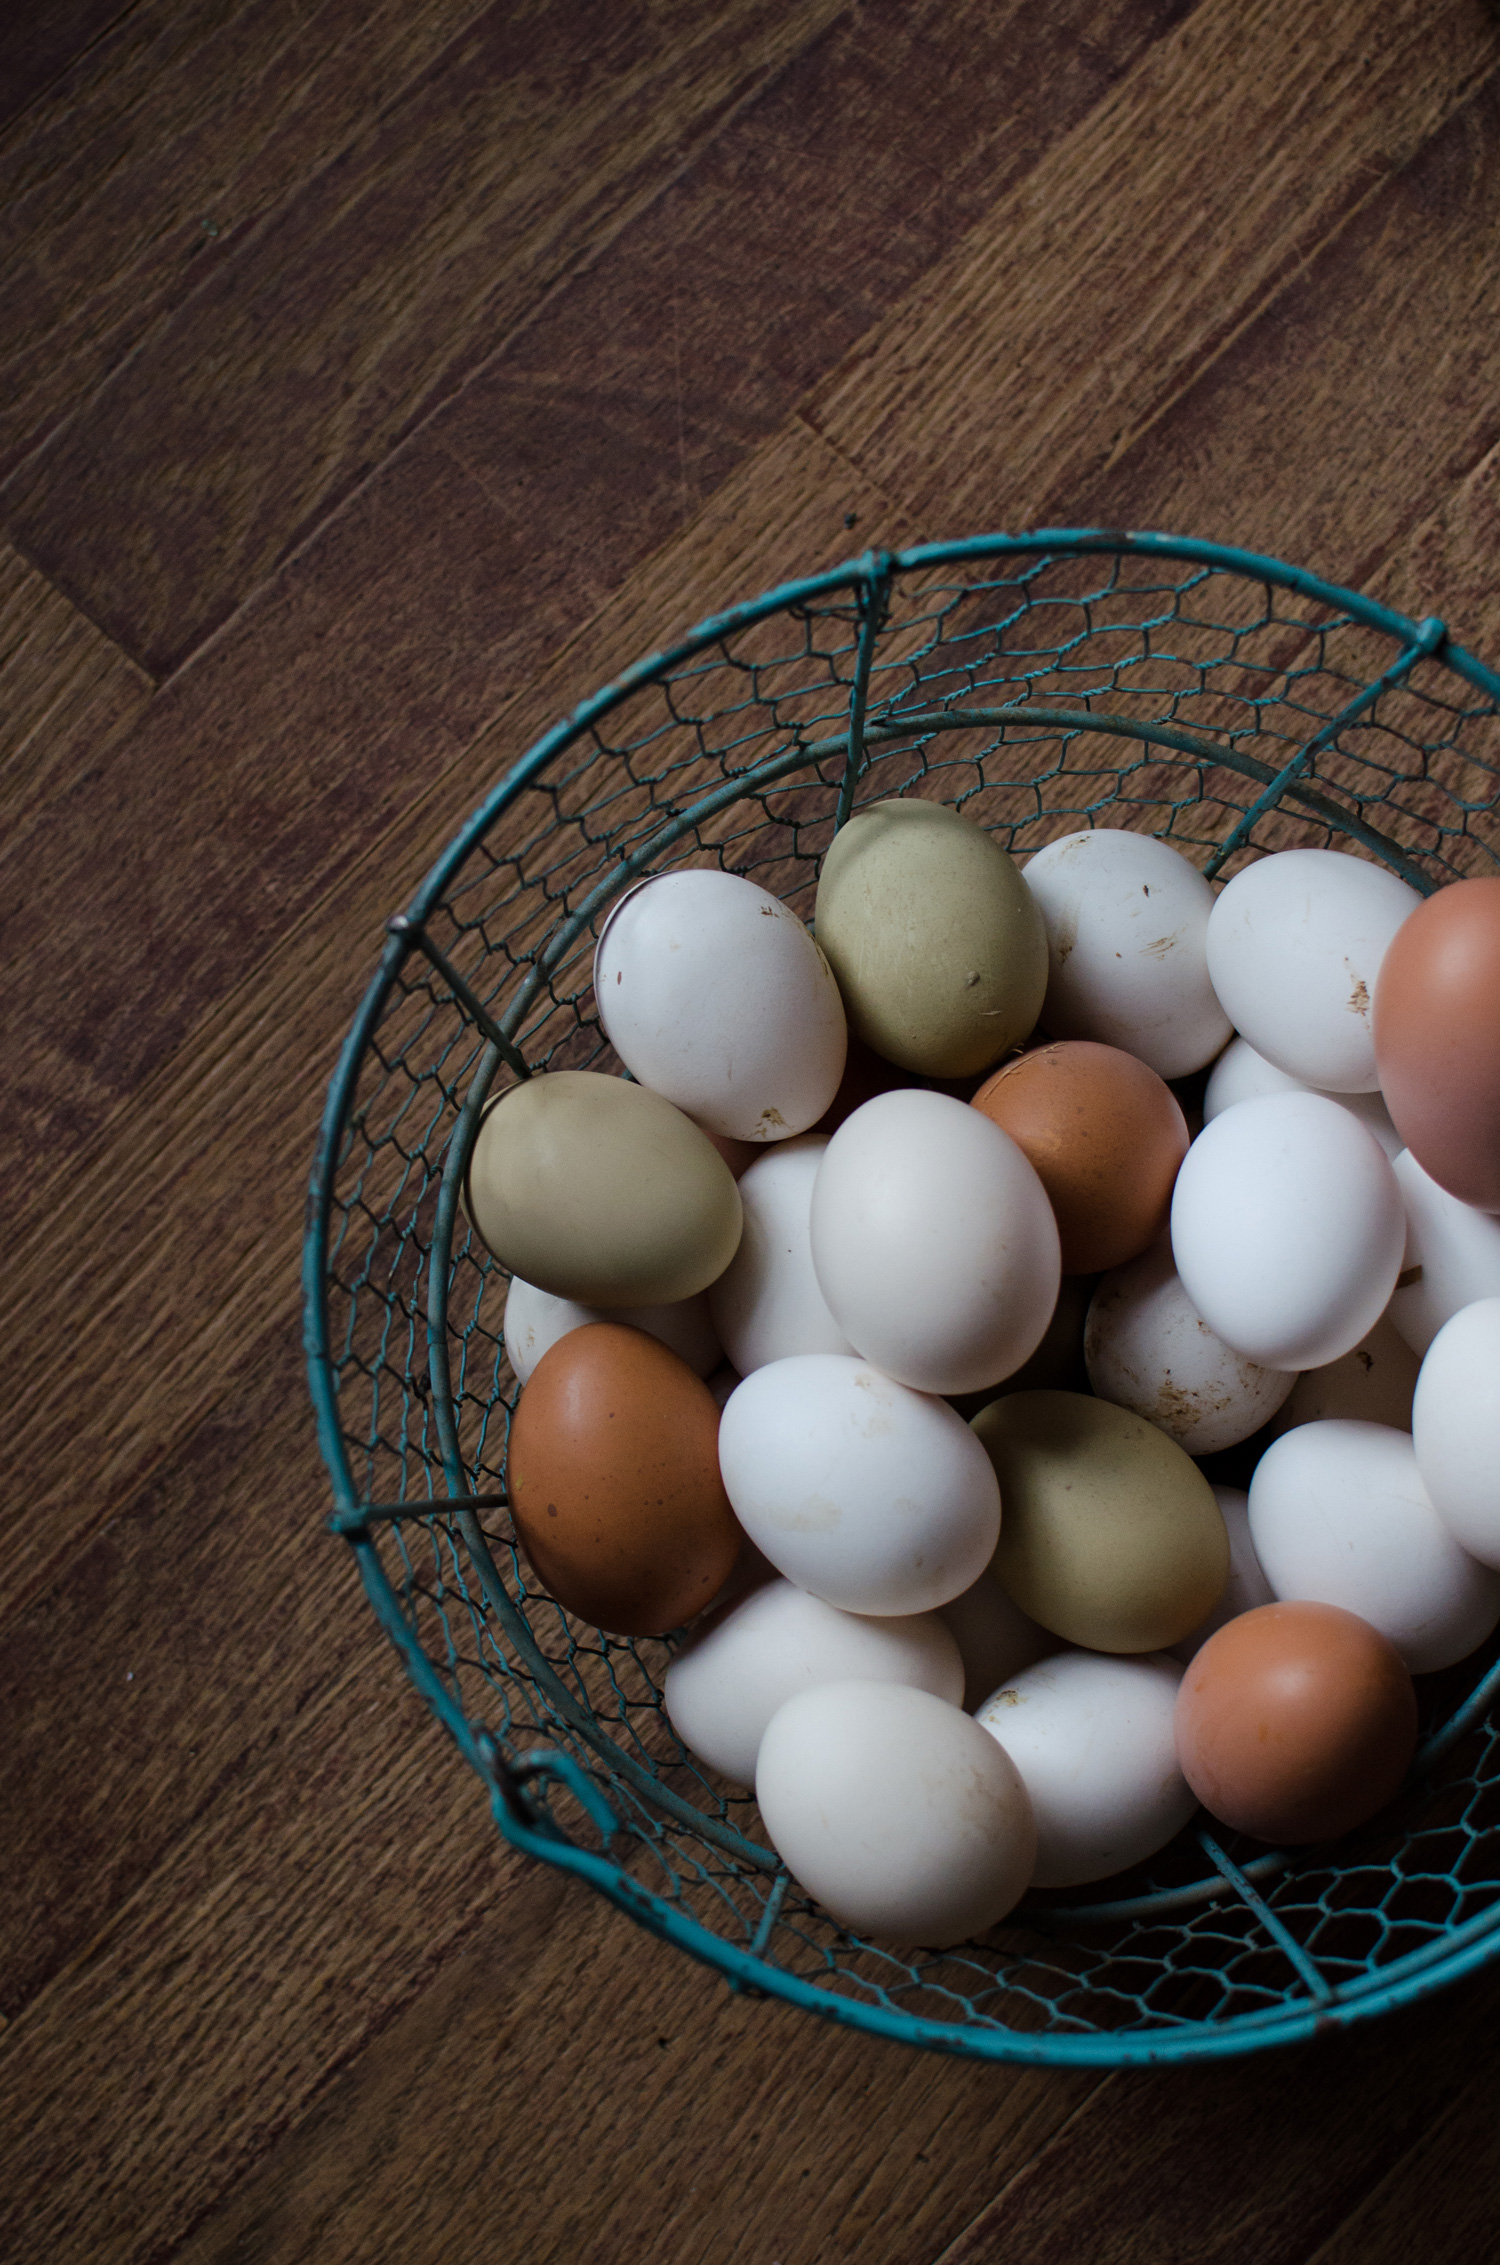 McMurray Hatchery Blog - Selecting the Best Chicken Breeds for Your Homestead - Fresh Eggs